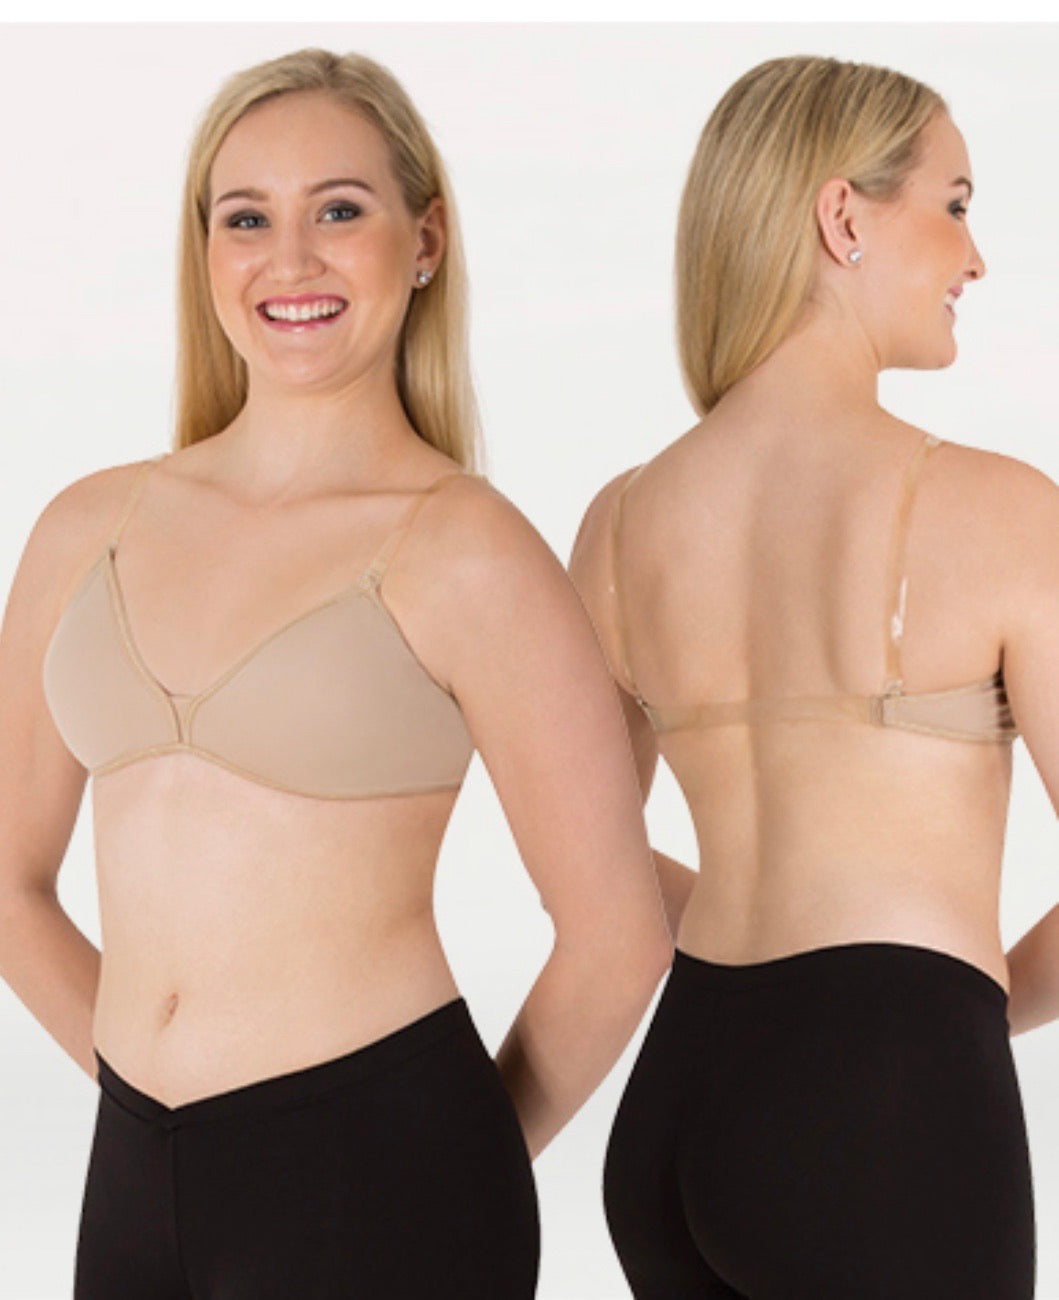 Body Wrappers Total Stretch Convertible Bra - Adult